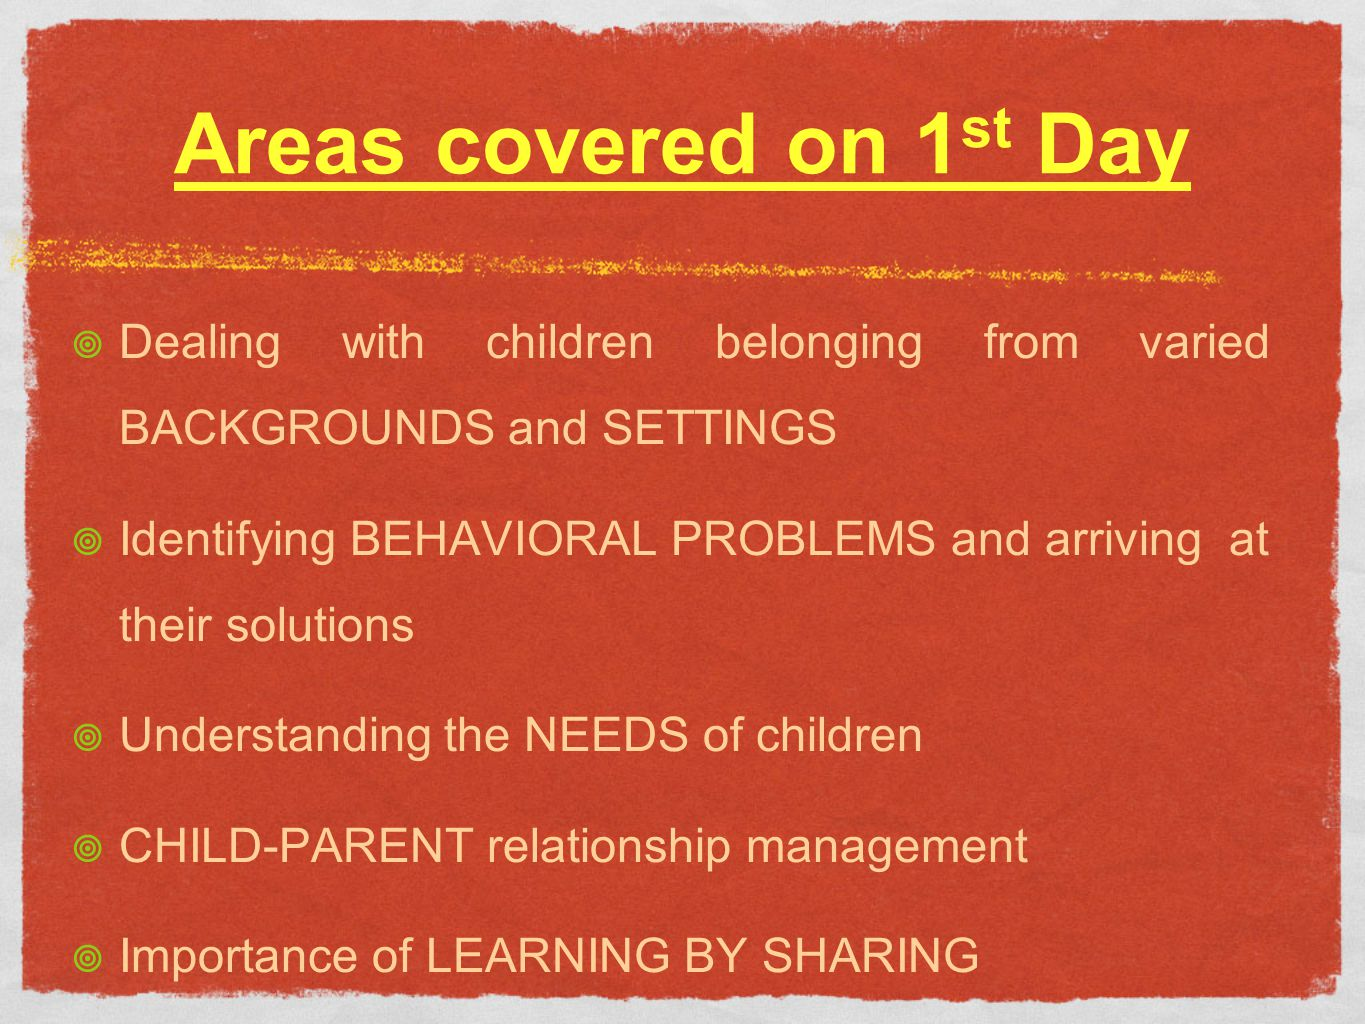 Areas covered on 1 st Day Dealing with children belonging from varied BACKGROUNDS and SETTINGS Identifying BEHAVIORAL PROBLEMS and arriving at their solutions Understanding the NEEDS of children CHILD-PARENT relationship management Importance of LEARNING BY SHARING